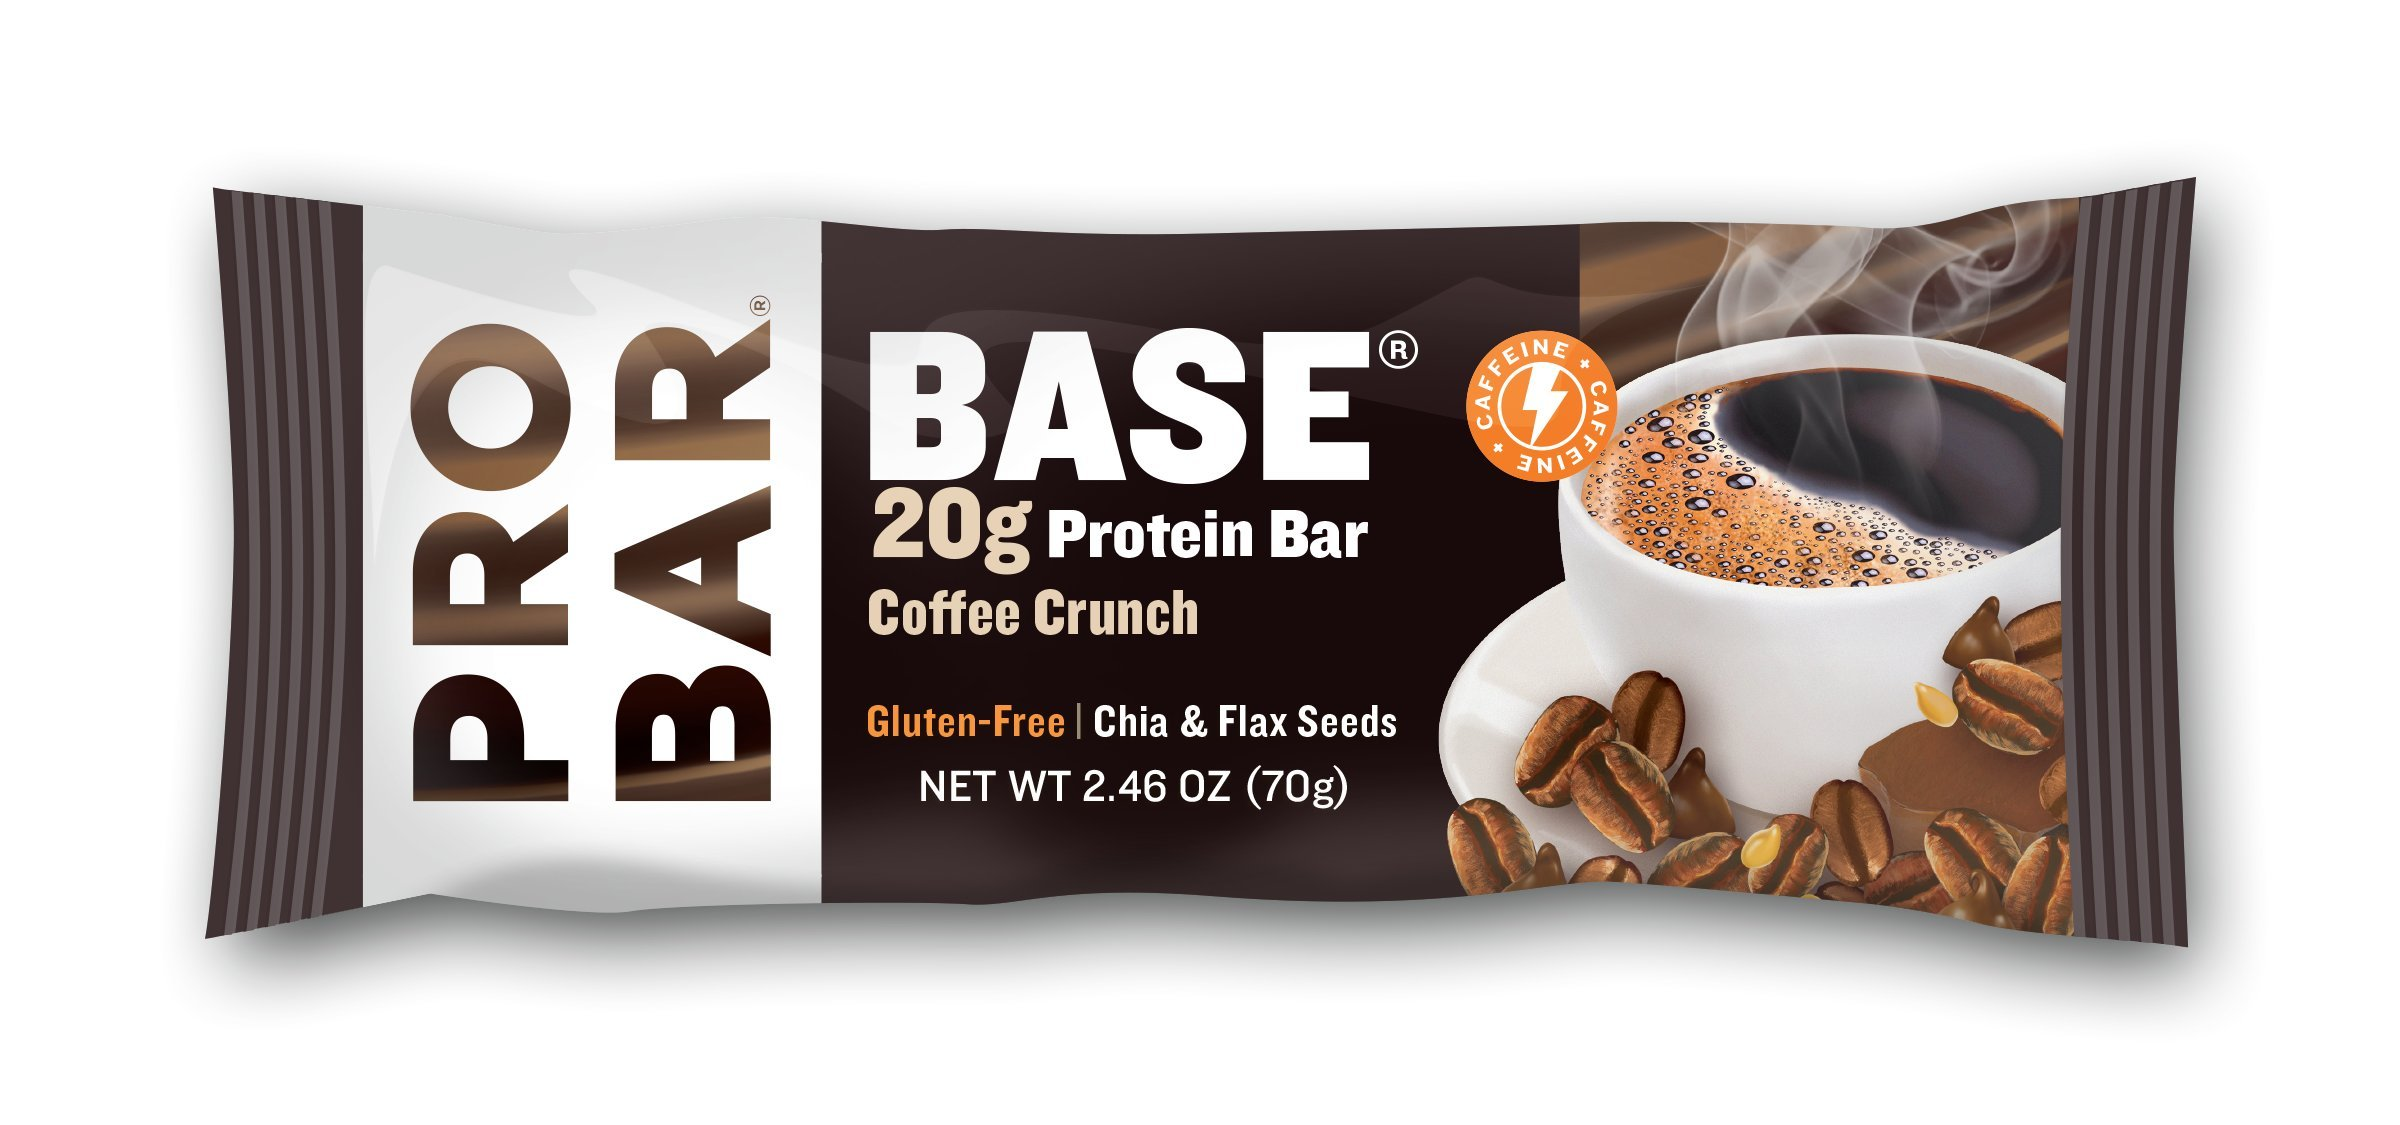 PROBAR - Base 2.46 Oz Protein Bar, Coffee Crunch, 12 Count - Gluten-Free, Plant-Based Whole Food Ingredients